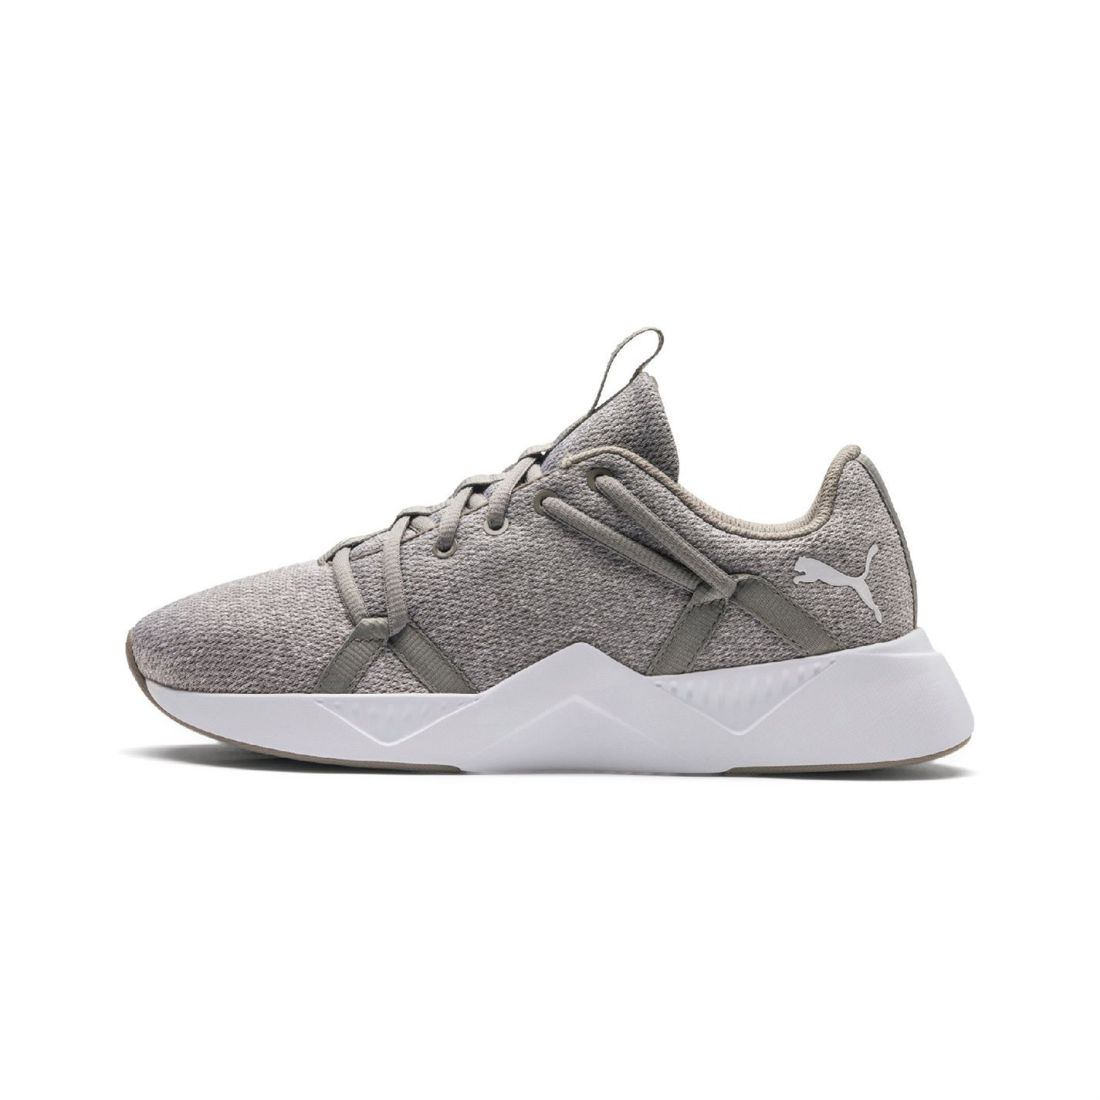 PUMA Incite Knit WN ´s 42 Women Fitness Crossfit Zumba Shoes. About this  product. Picture 1 of 8  Picture 2 of 8  Picture 3 of 8 ... c39a5c535